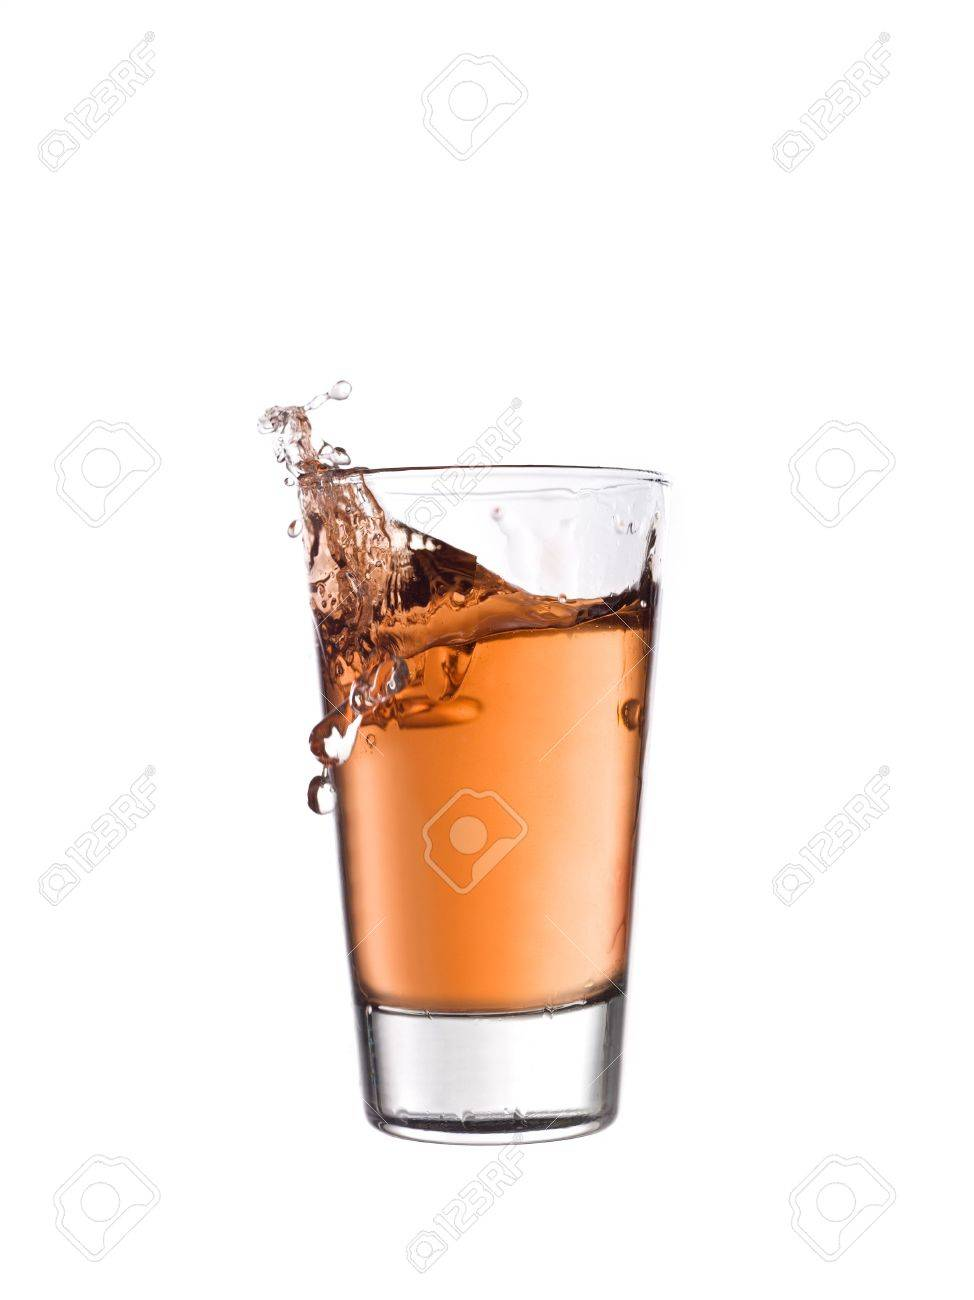 Splash in a glass of red lemonade Stock Photo - 5375319